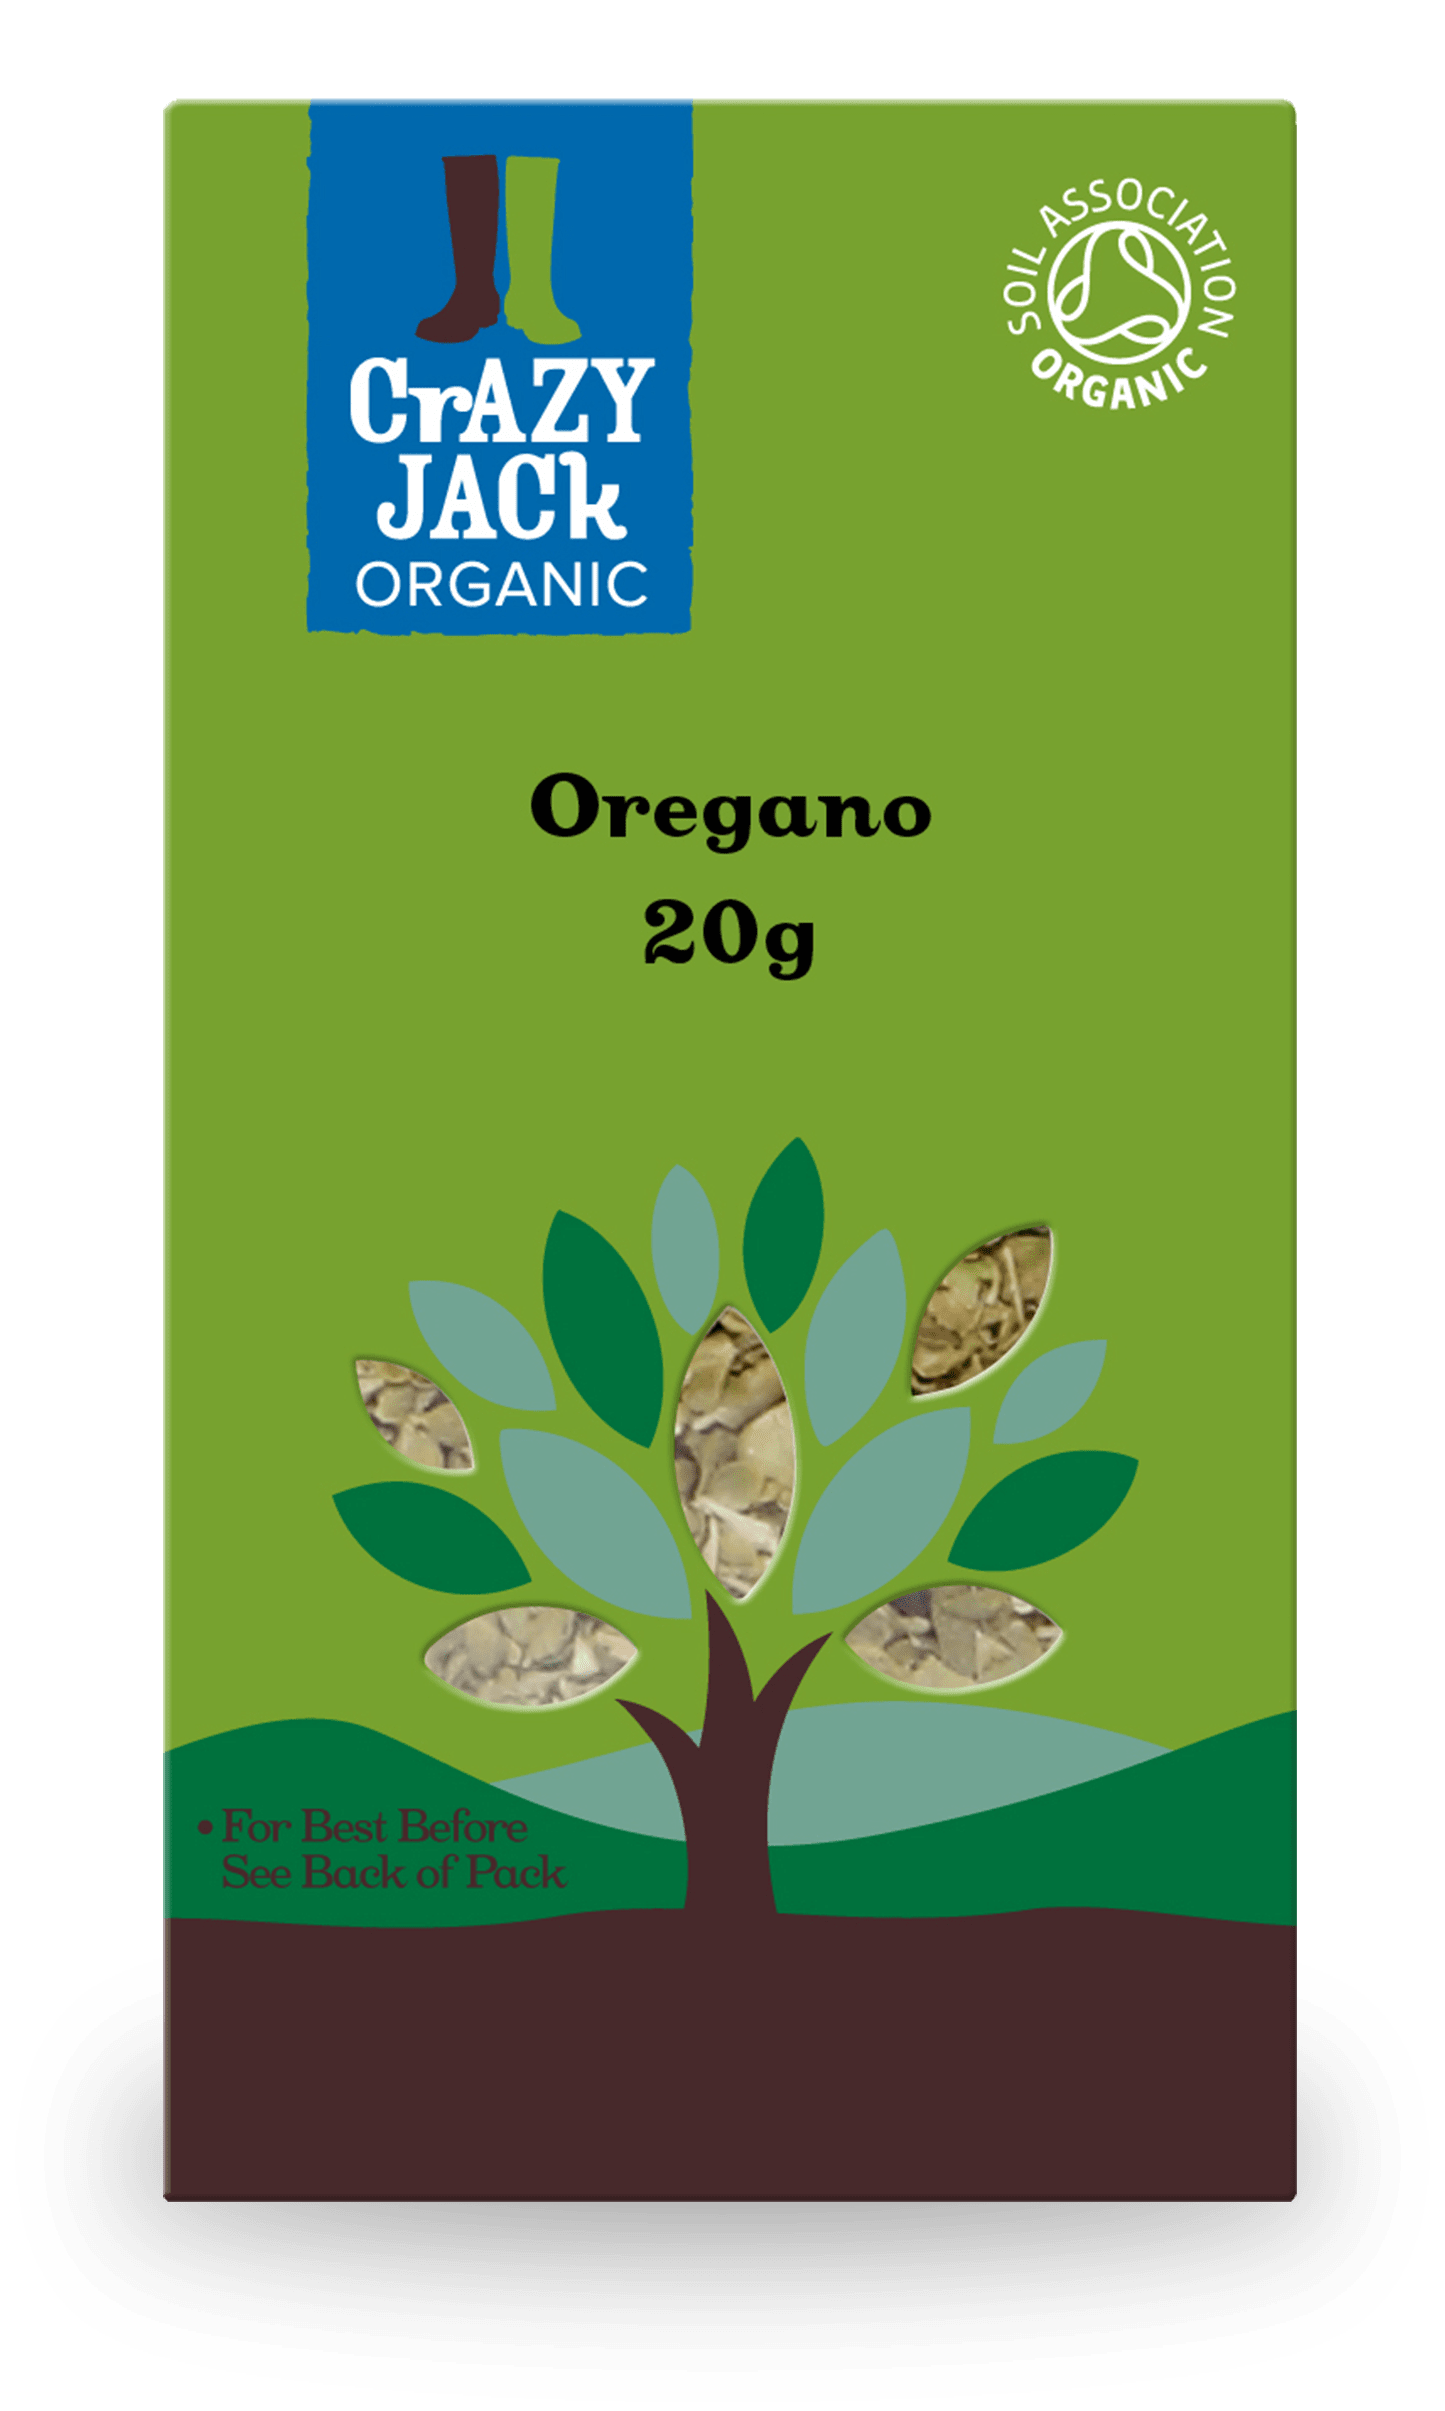 20g packet of organic oregano